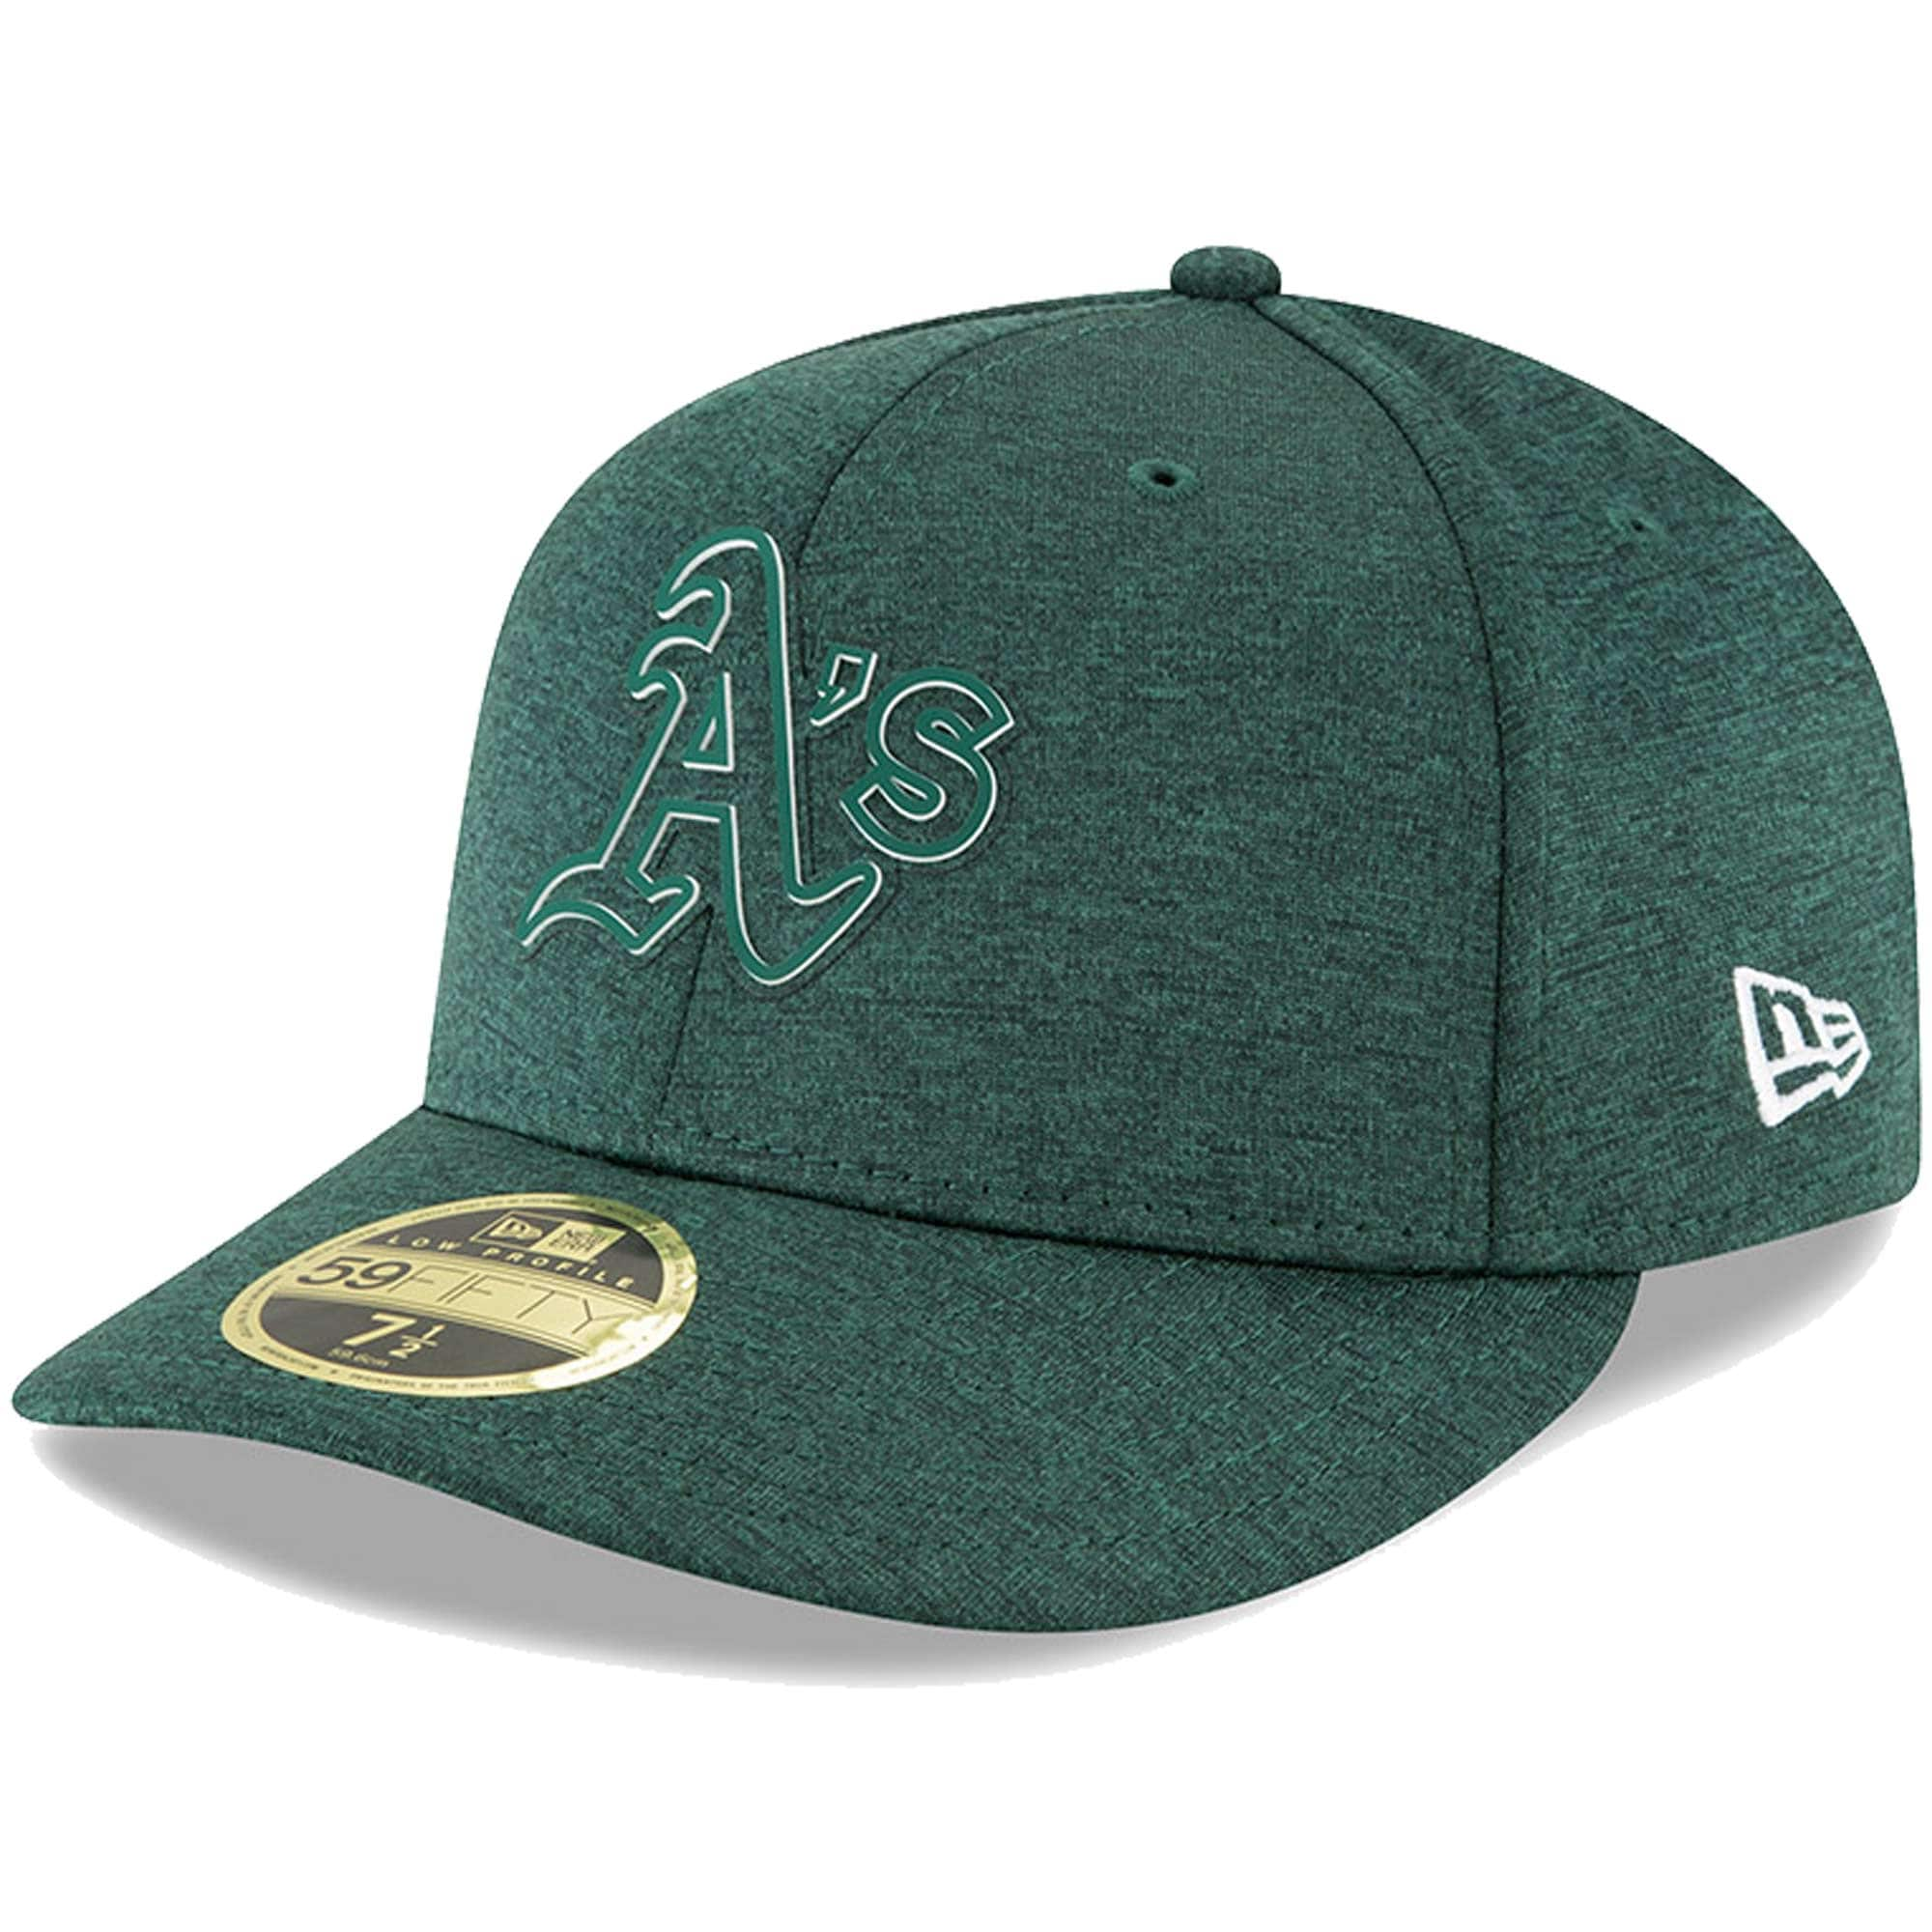 Oakland Athletics New Era 2018 Clubhouse Collection Low Profile 59FIFTY Fitted Hat - Green